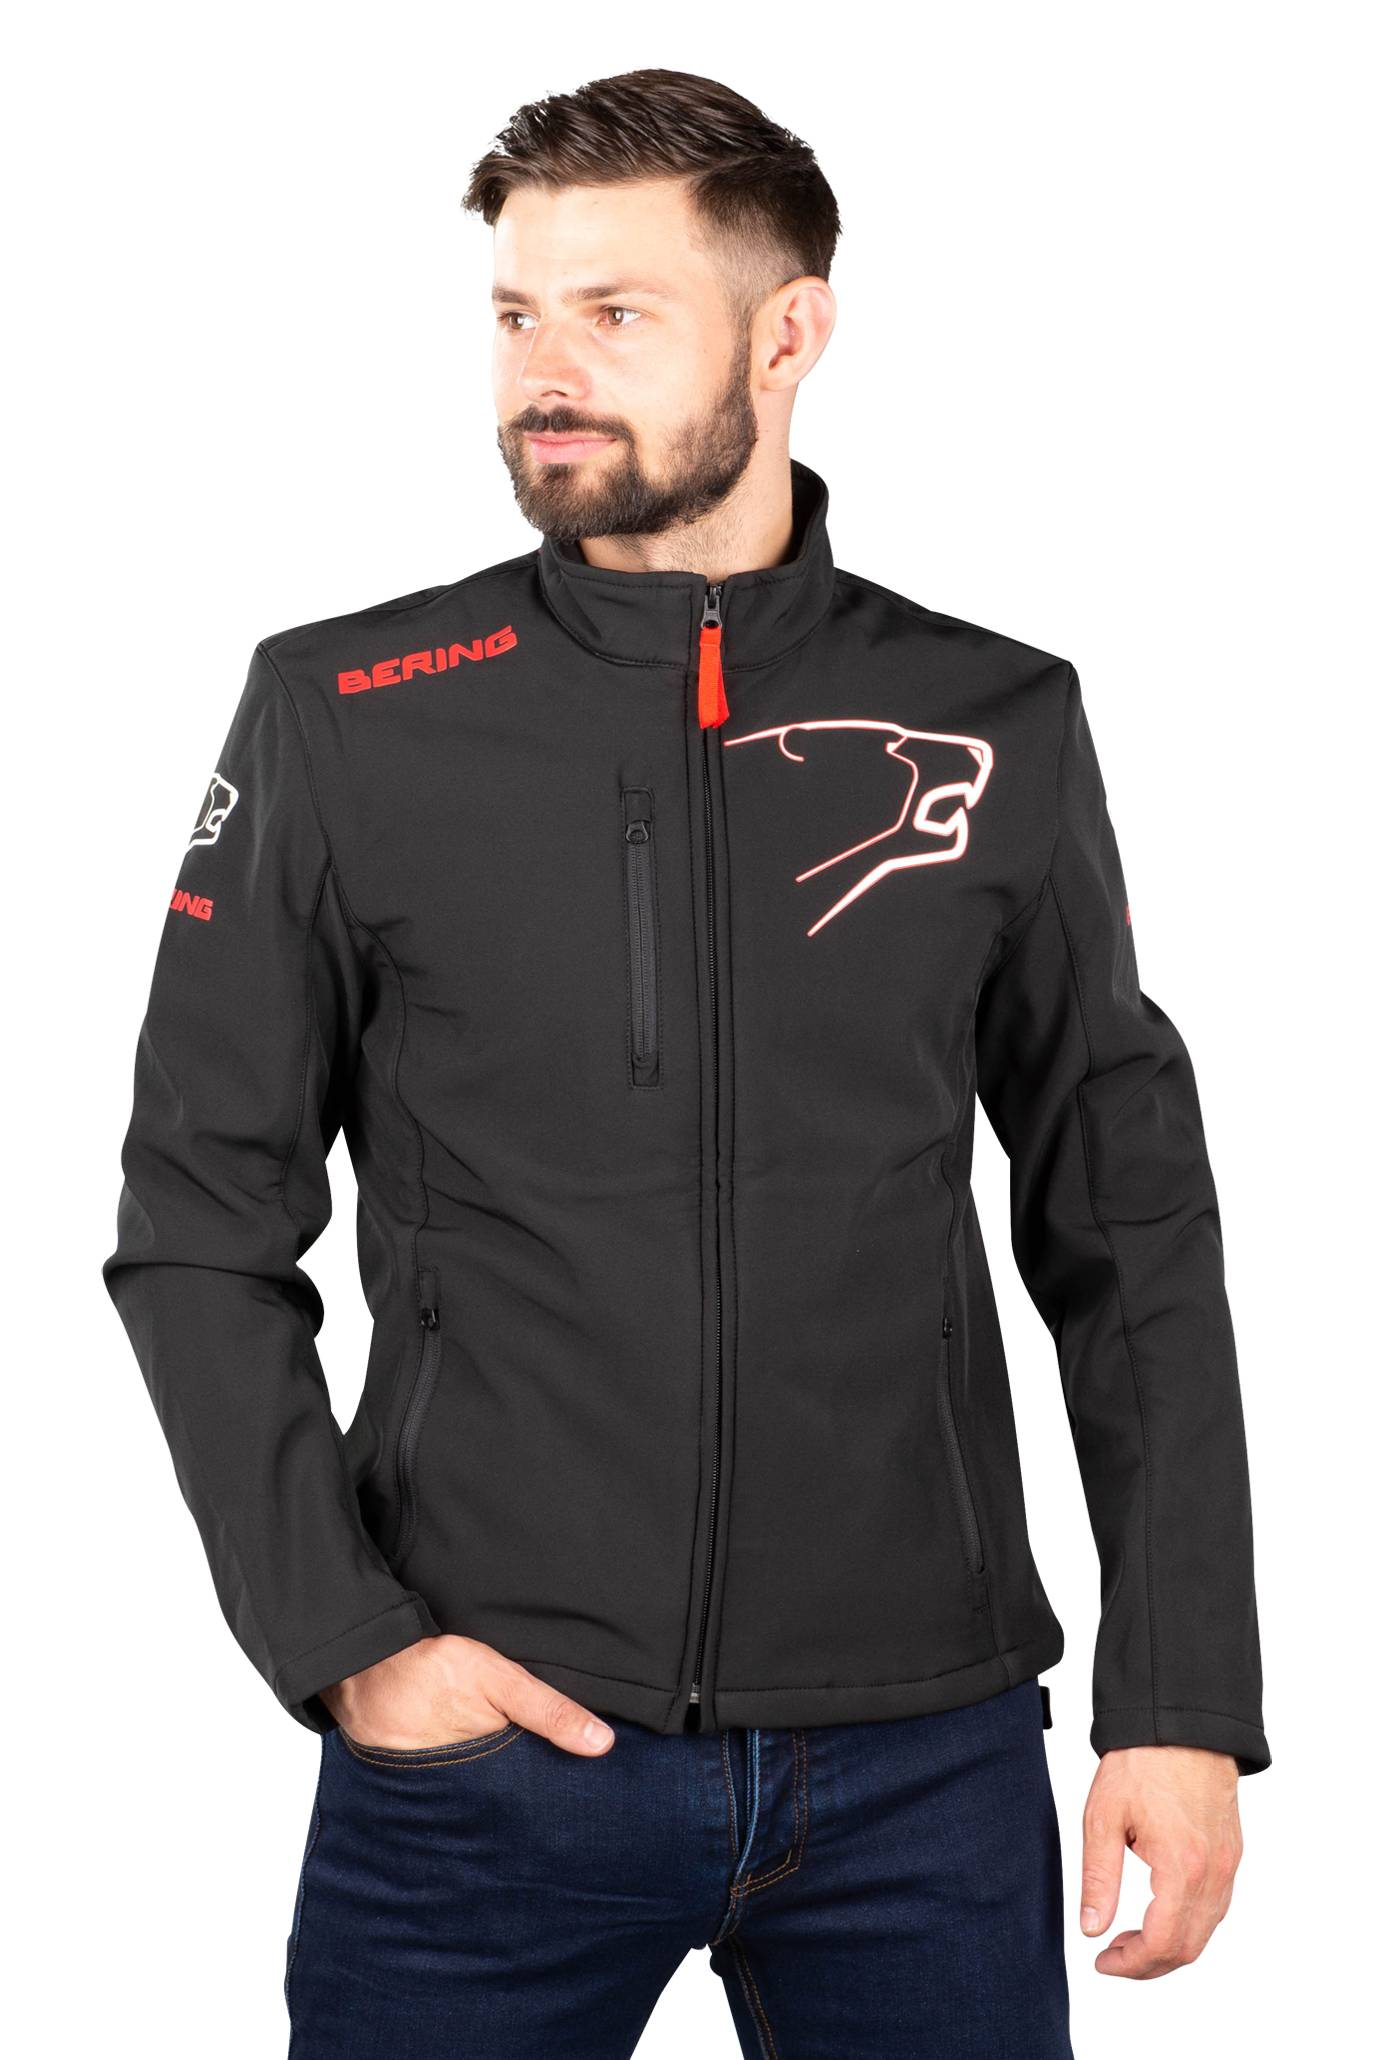 Bering Giacca  Softshell 2016 Nero-Rosso